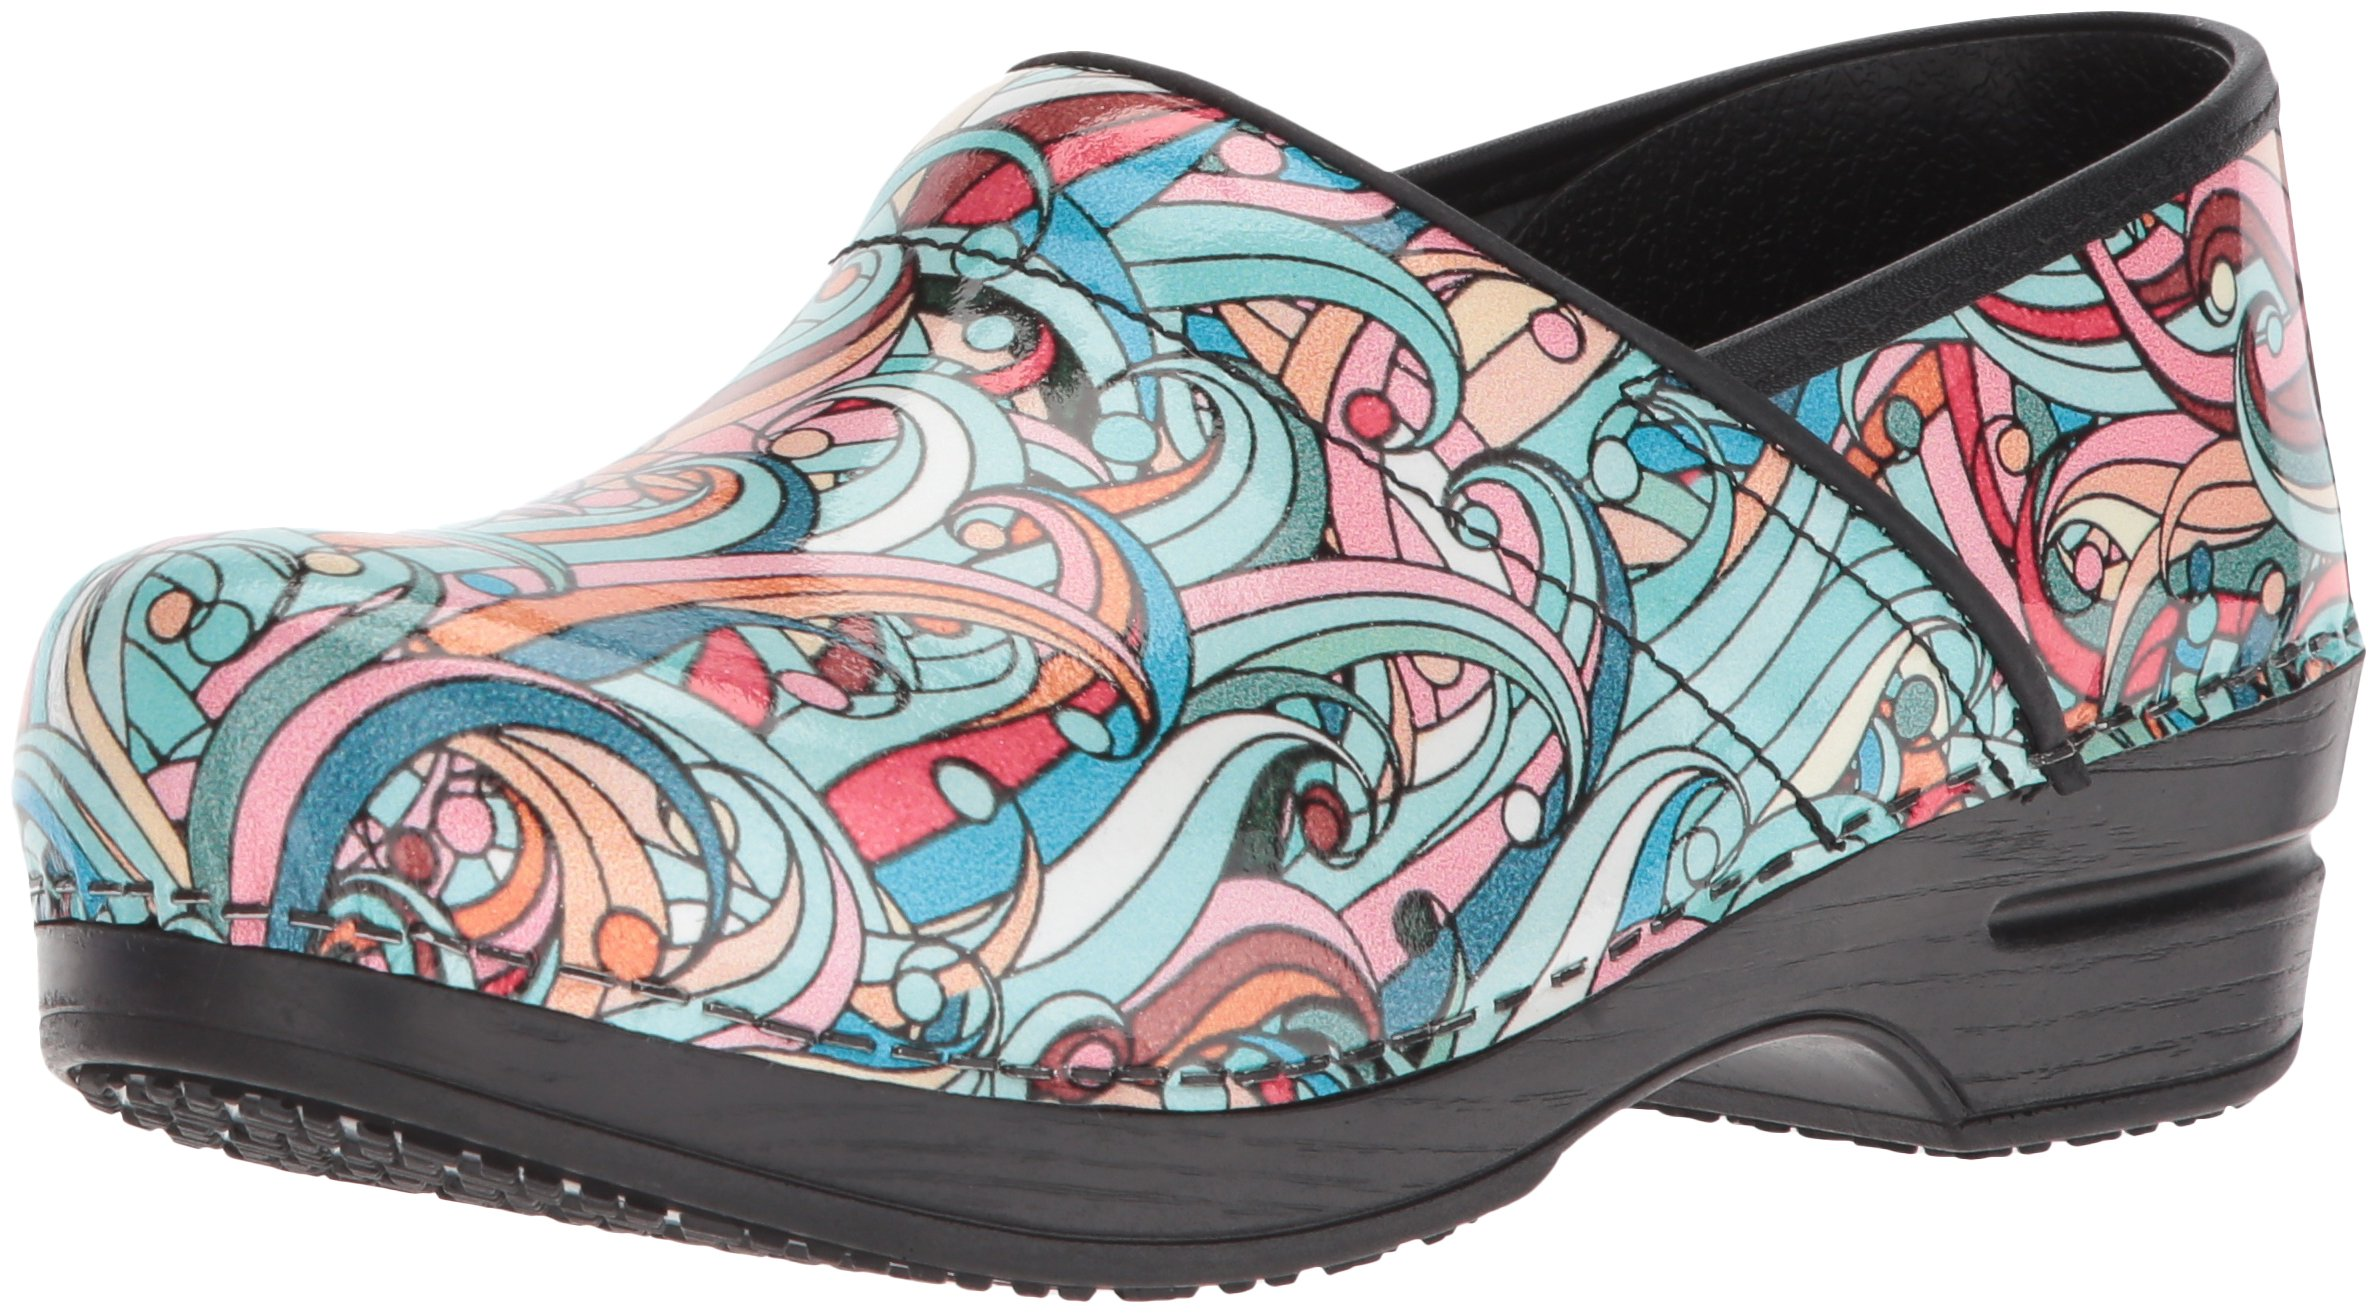 Sanita Women's Smart Step Pro. Siren Clog, Multi, 42 M EU (10.5-11 US) by Sanita